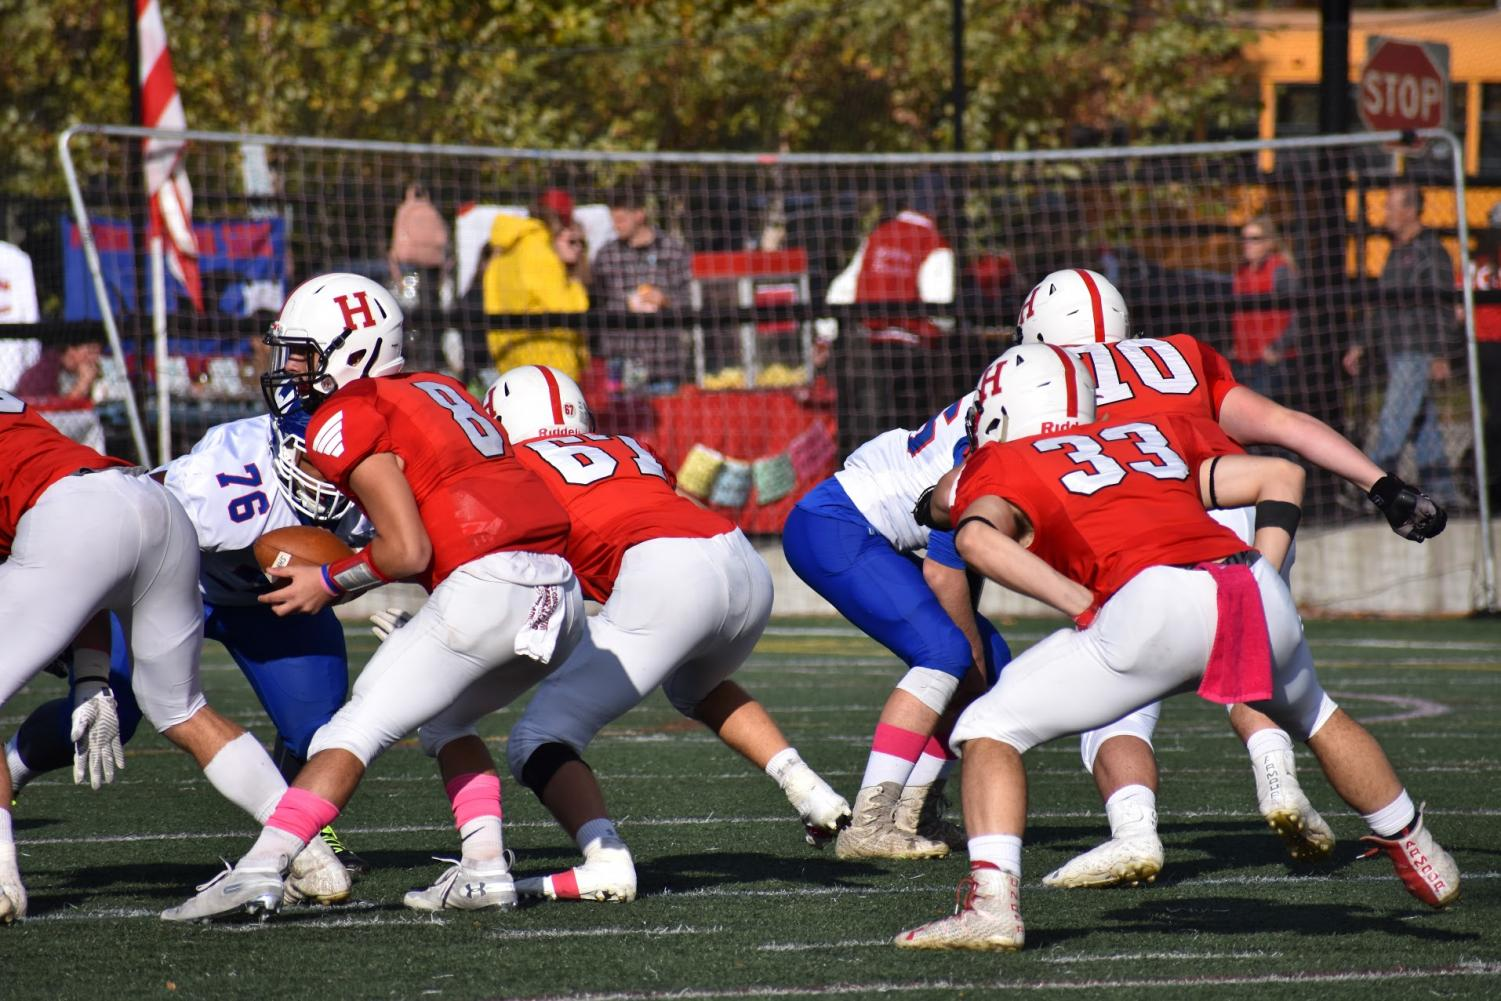 Junior Owen O'Brien takes the snap. Most of Hingham's plays were running plays, many of which going for over ten yards.